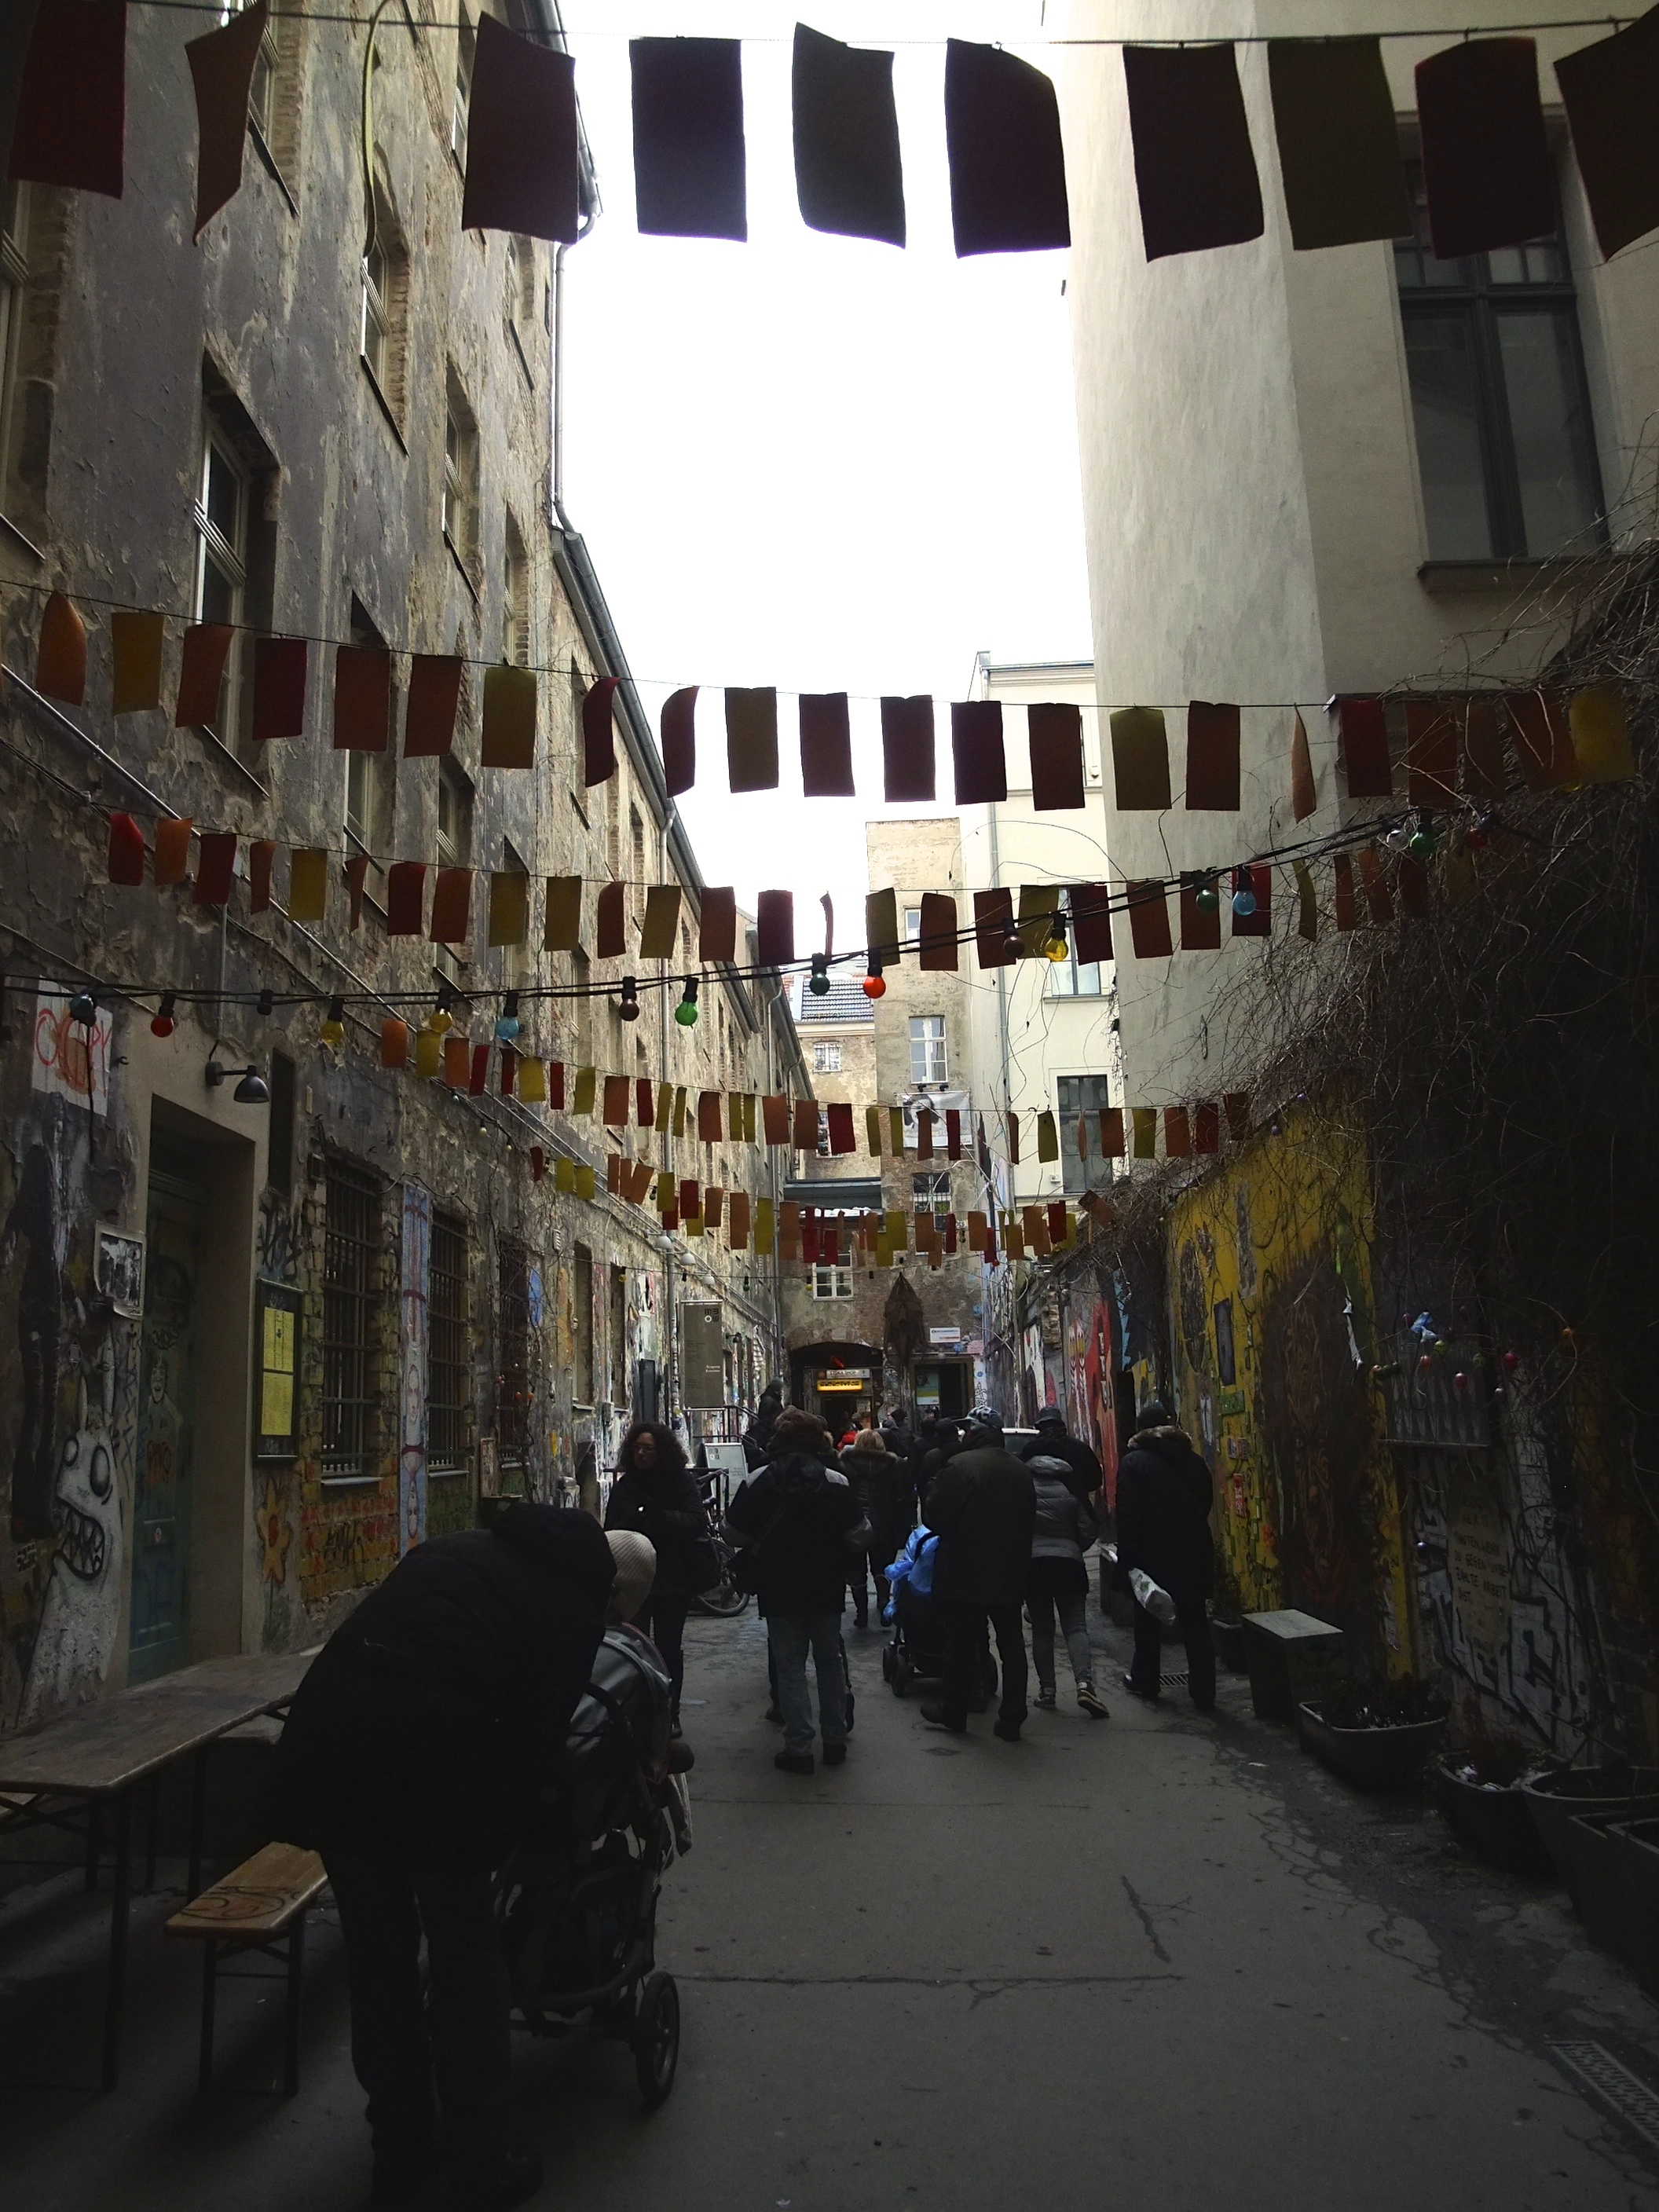 A side street around Hackescher Markt